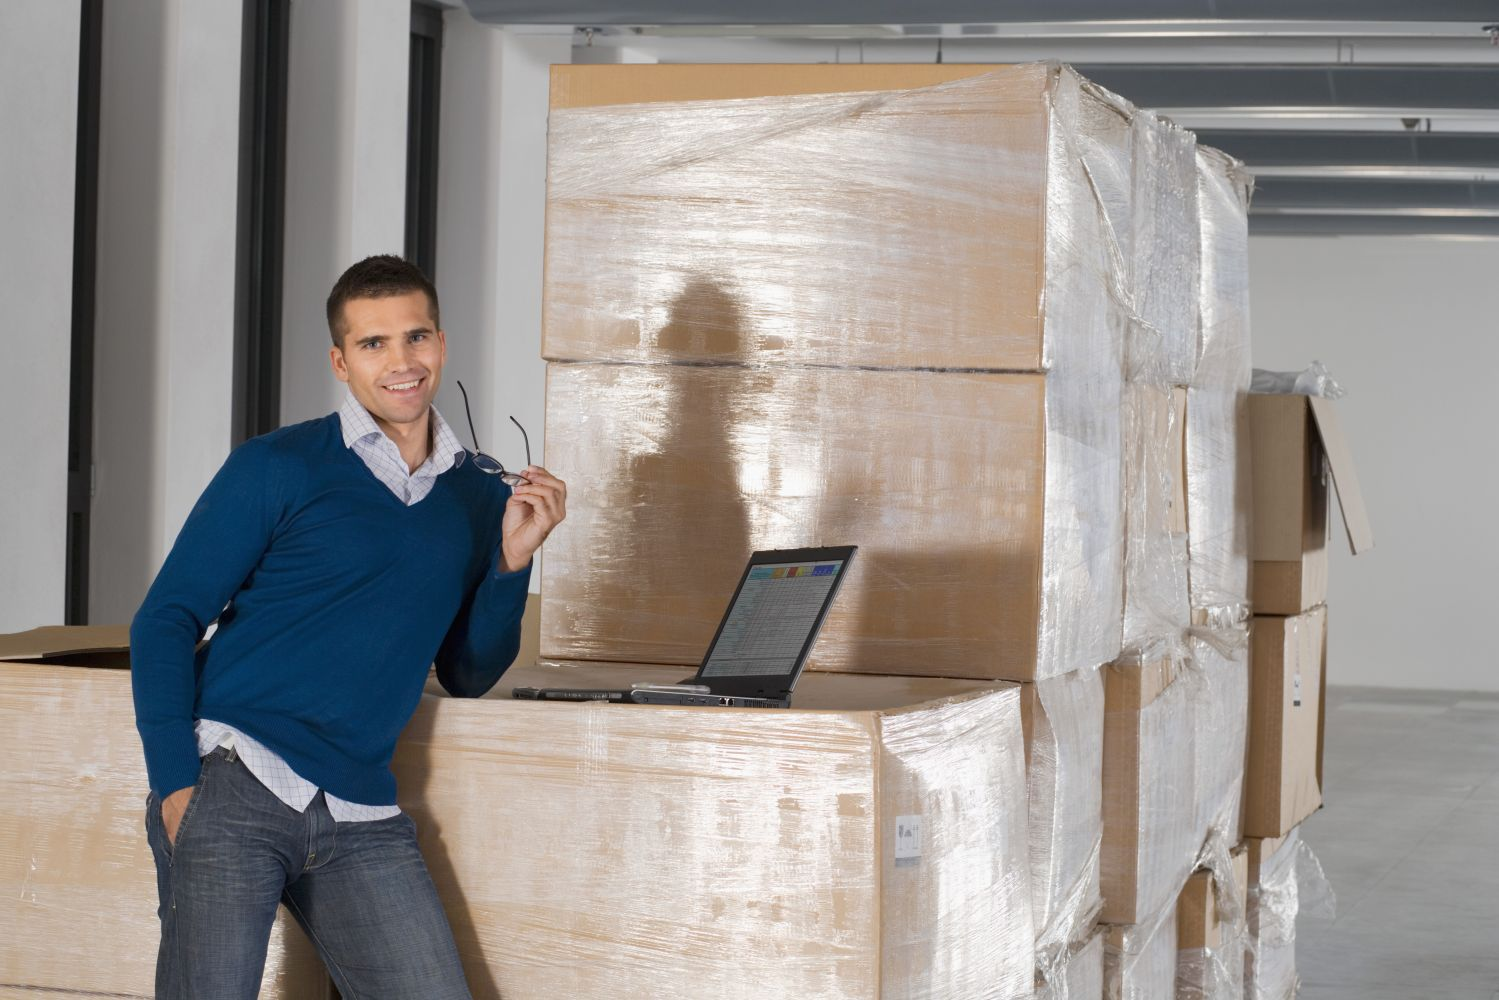 Secure storage services for all of your needs in Loveland, OH